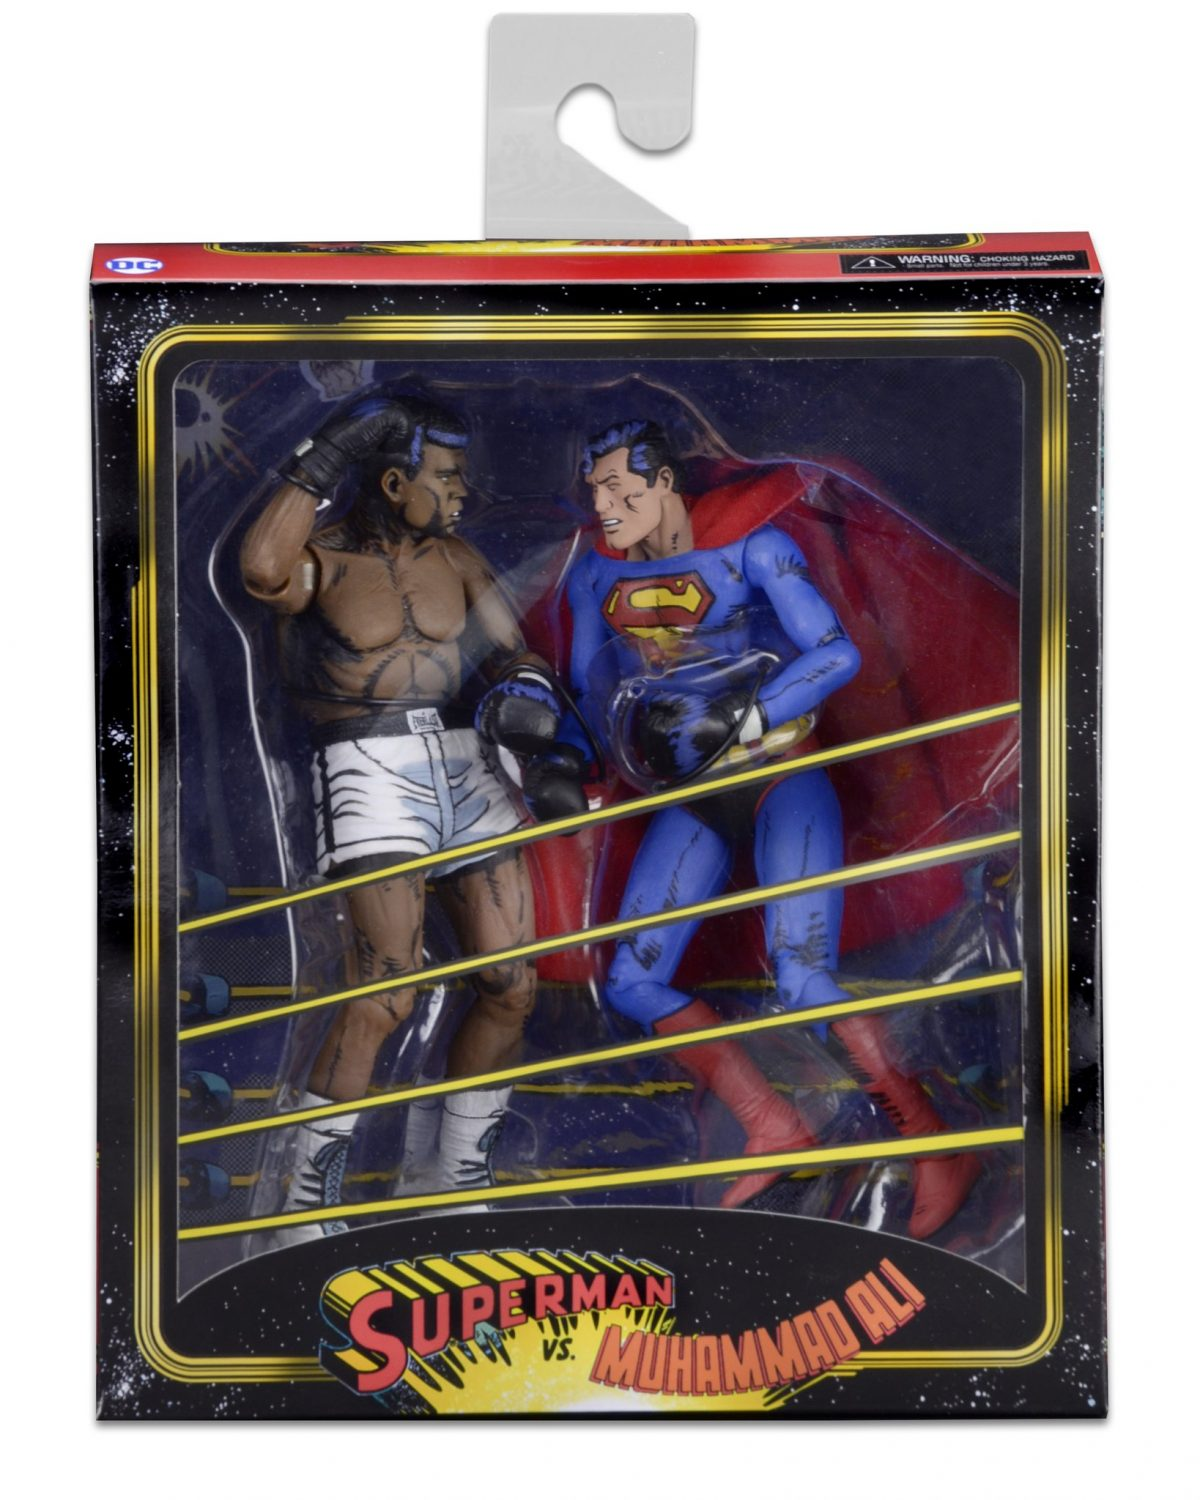 NECA Toys Muhammad Ali Vs. Superman Packaging Preview & More